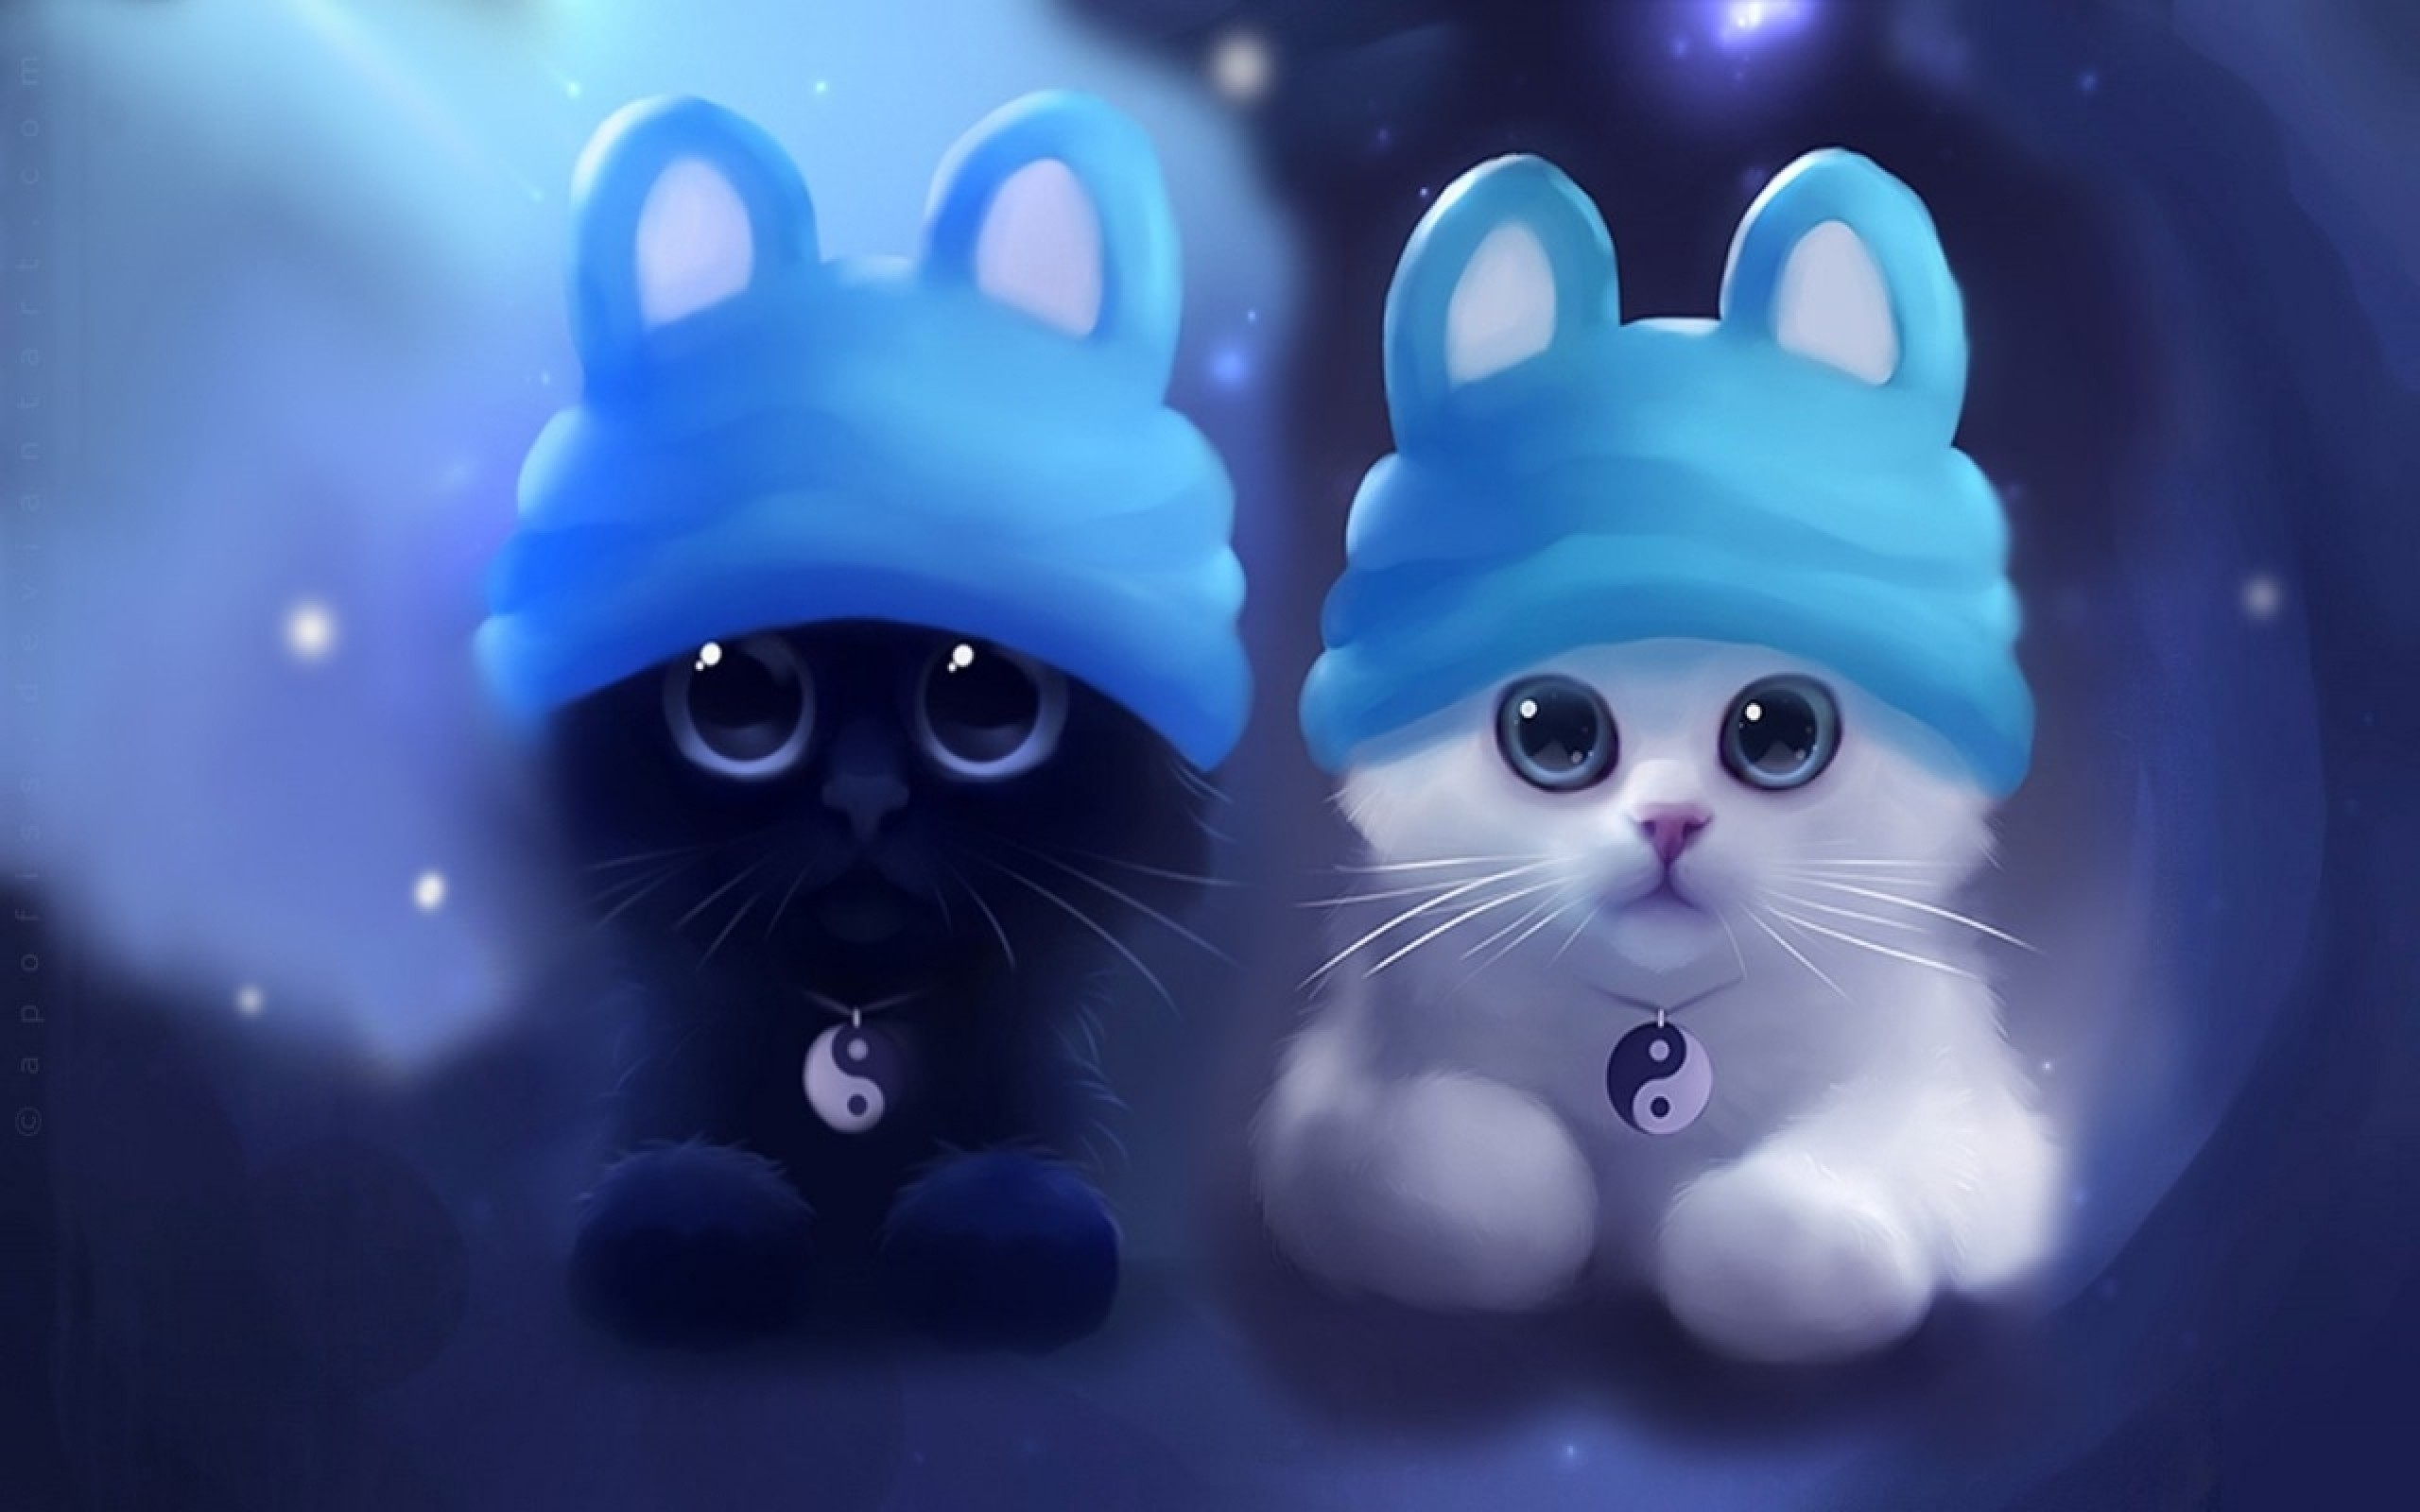 2560x1600 hd cartoon cat photos cool background photos windows wallpapers smart phone  background photos download widescreen desktop backgrounds high quality  2560×1600 ...